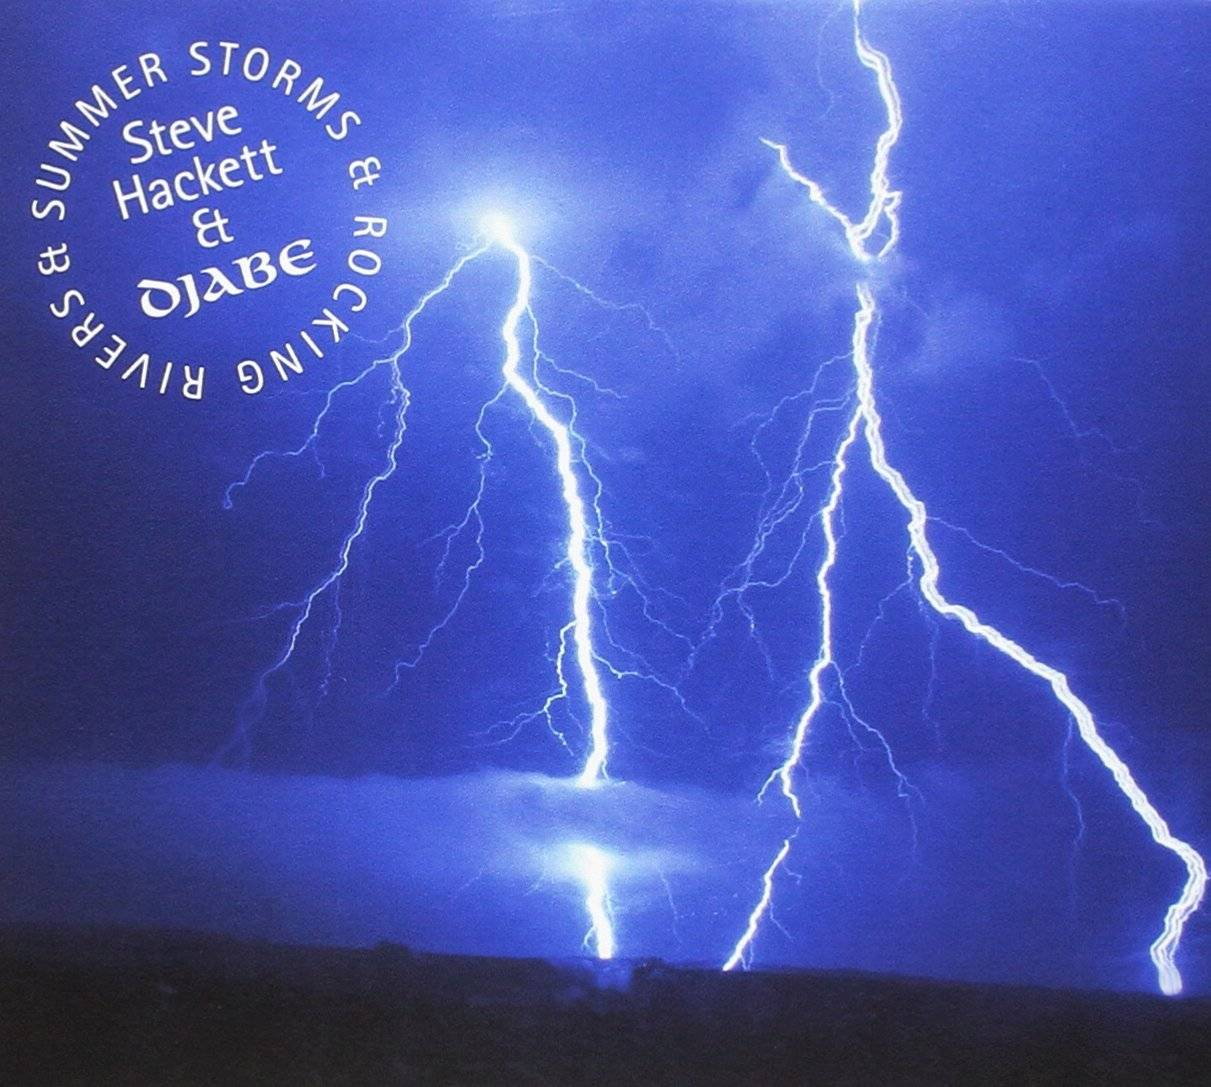 Steve Hackett - Summer Storms and Rocking Rivers (2017)